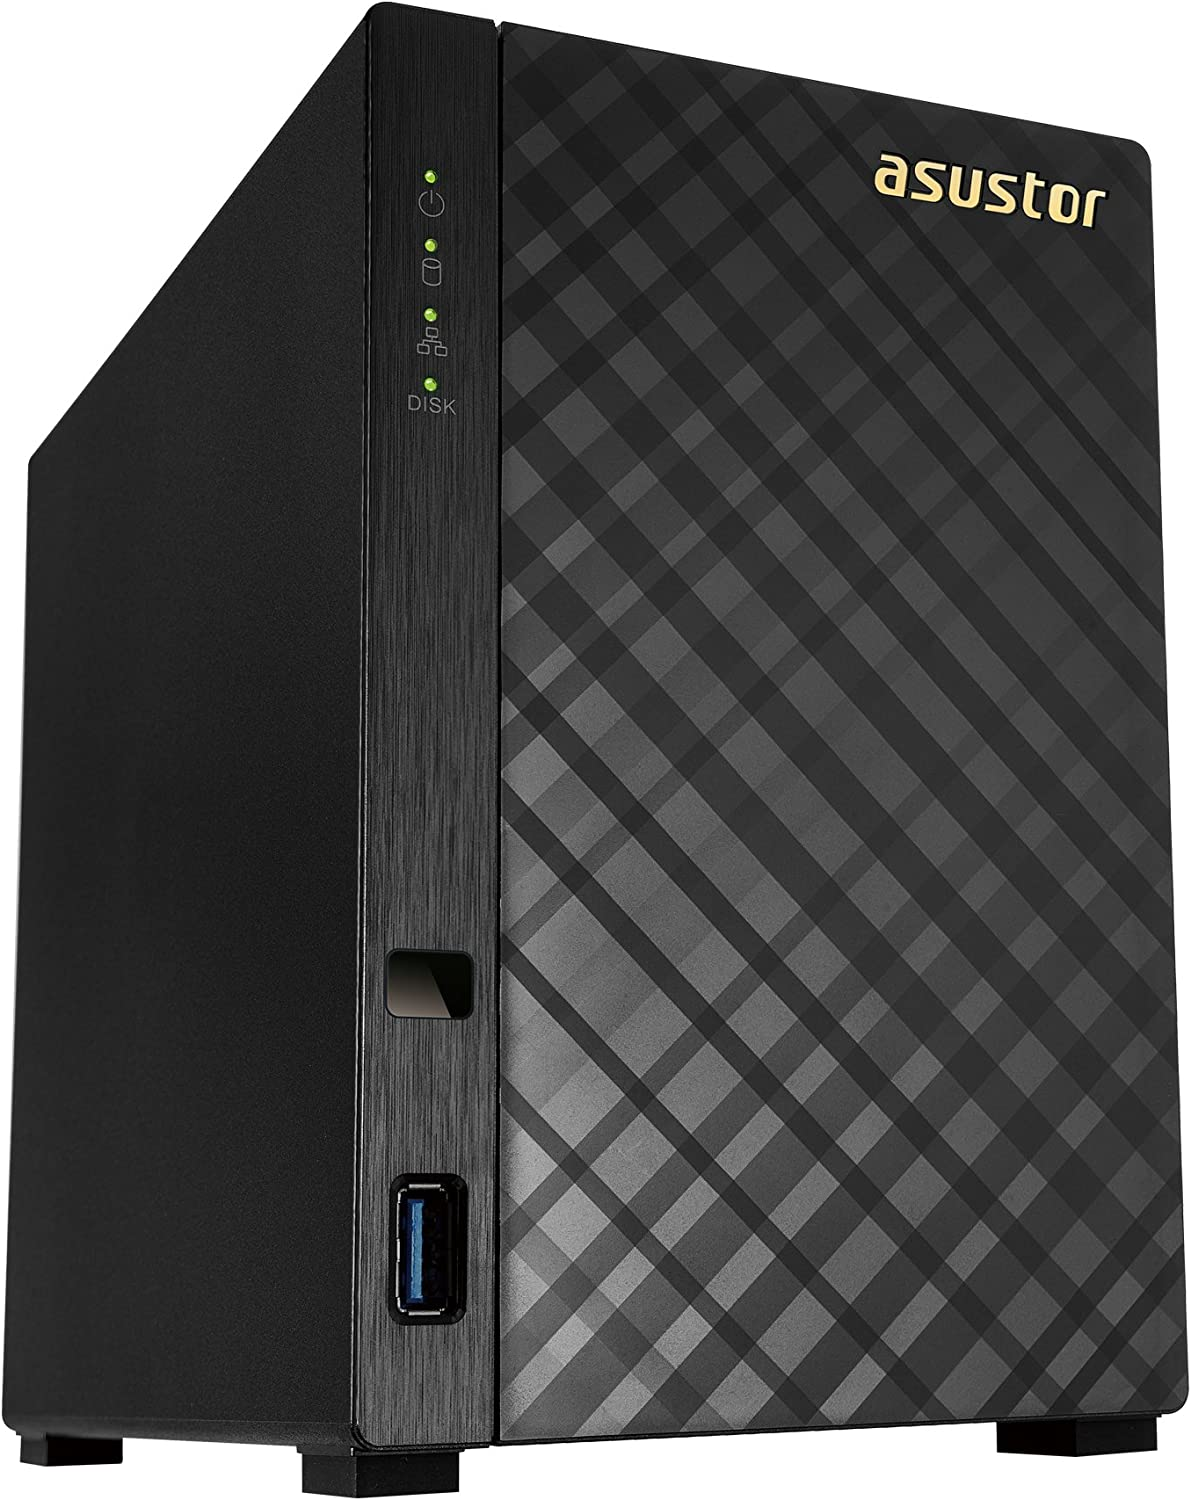 Asustor AS1002T v2 | Network Attached Storage + Free exFAT License | 1.6GHz Dual-Core, 512MB RAM | Personal Private Cloud | Home Media Server (2 Bay Diskless NAS)